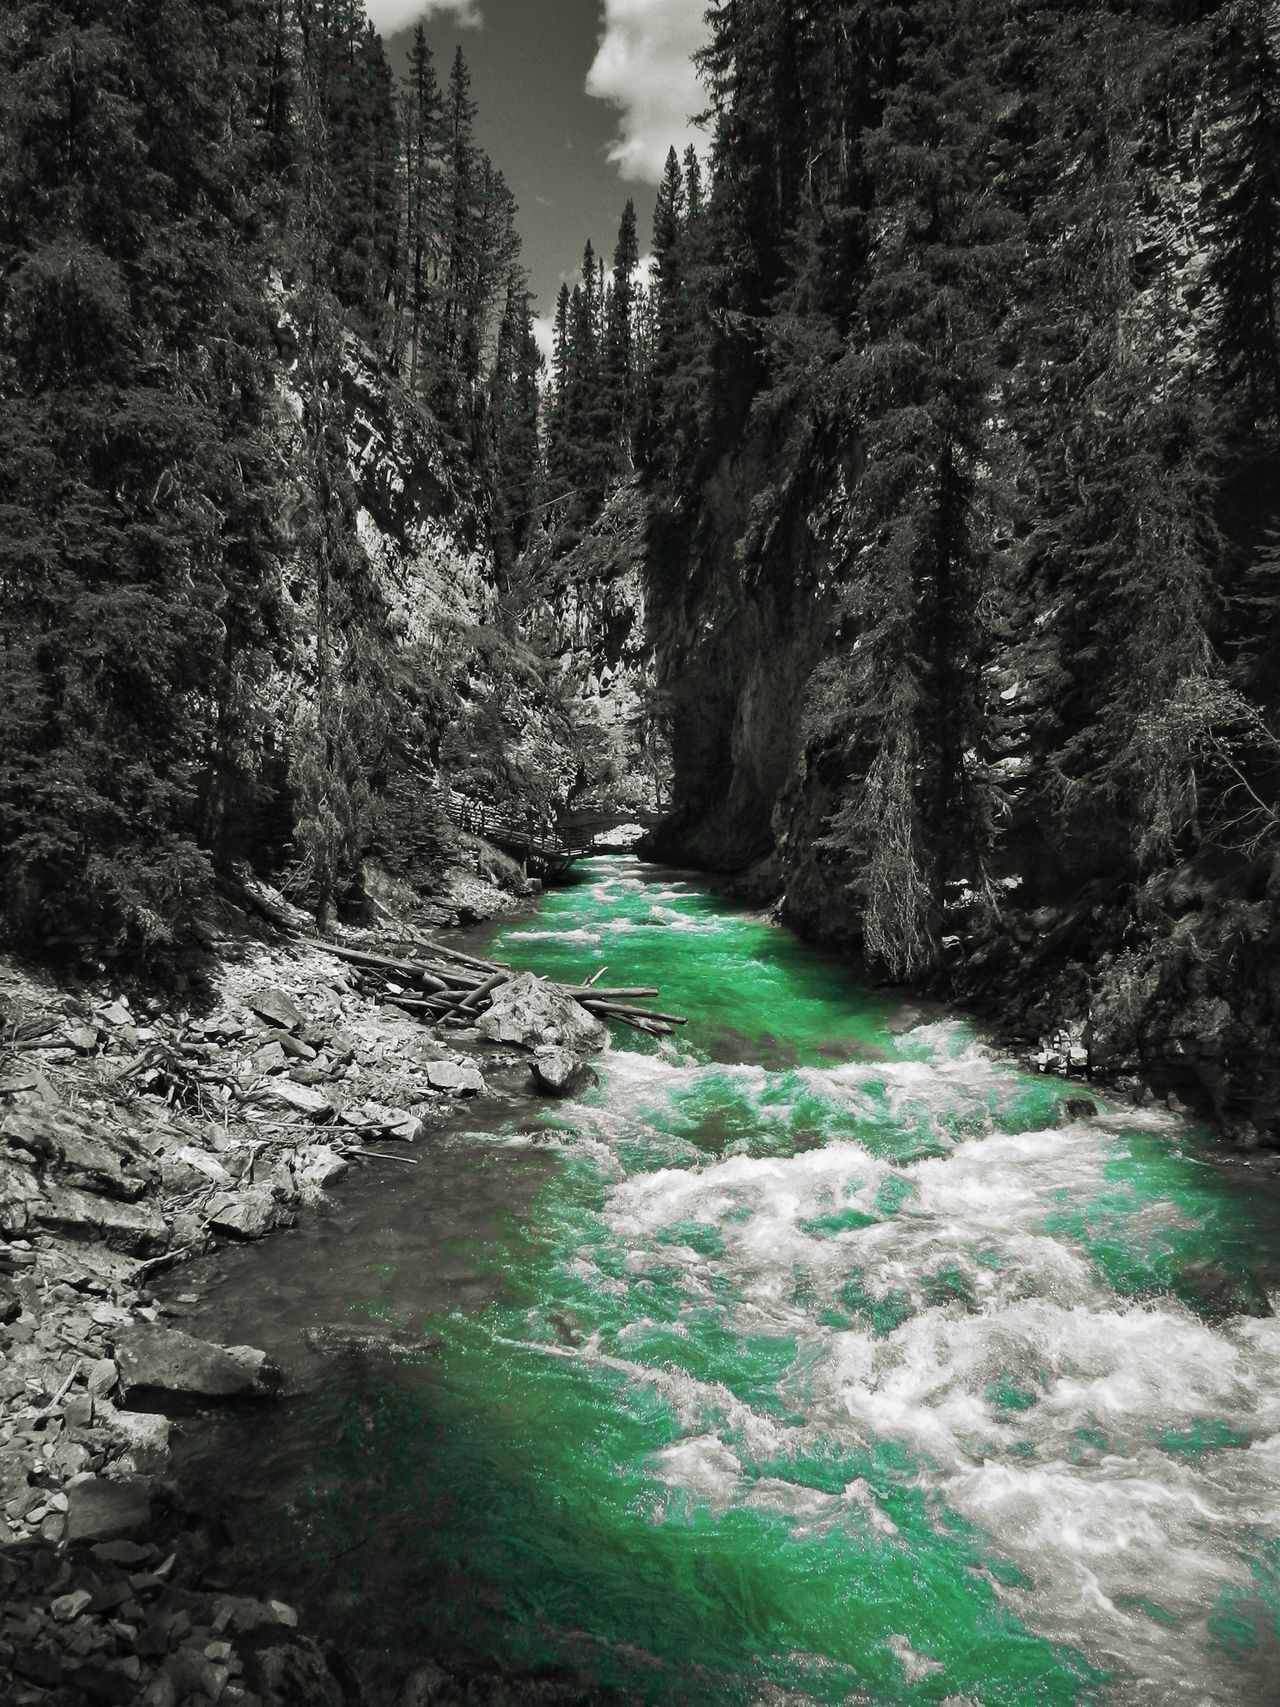 Alberta, Canada Beauty In Nature Black And Green Canada Day Forest Motion Nature No People Outdoors River Scenics Sky Tranquil Scene Tranquility Tree Water Wild River